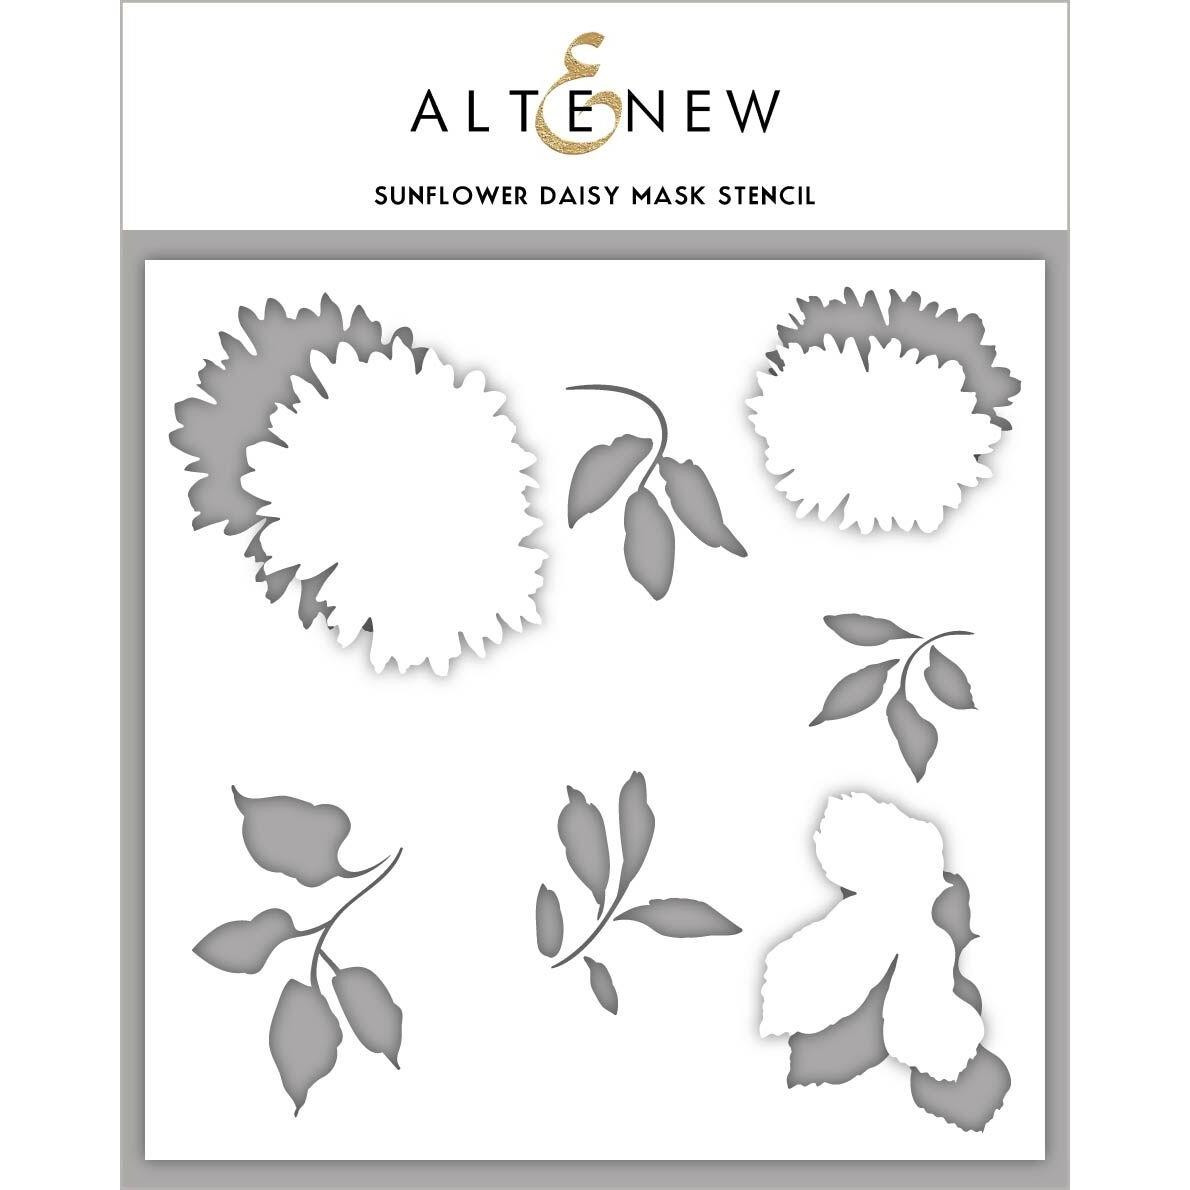 Sunflower Daisy, Altenew Mask Stencil - 704831301731